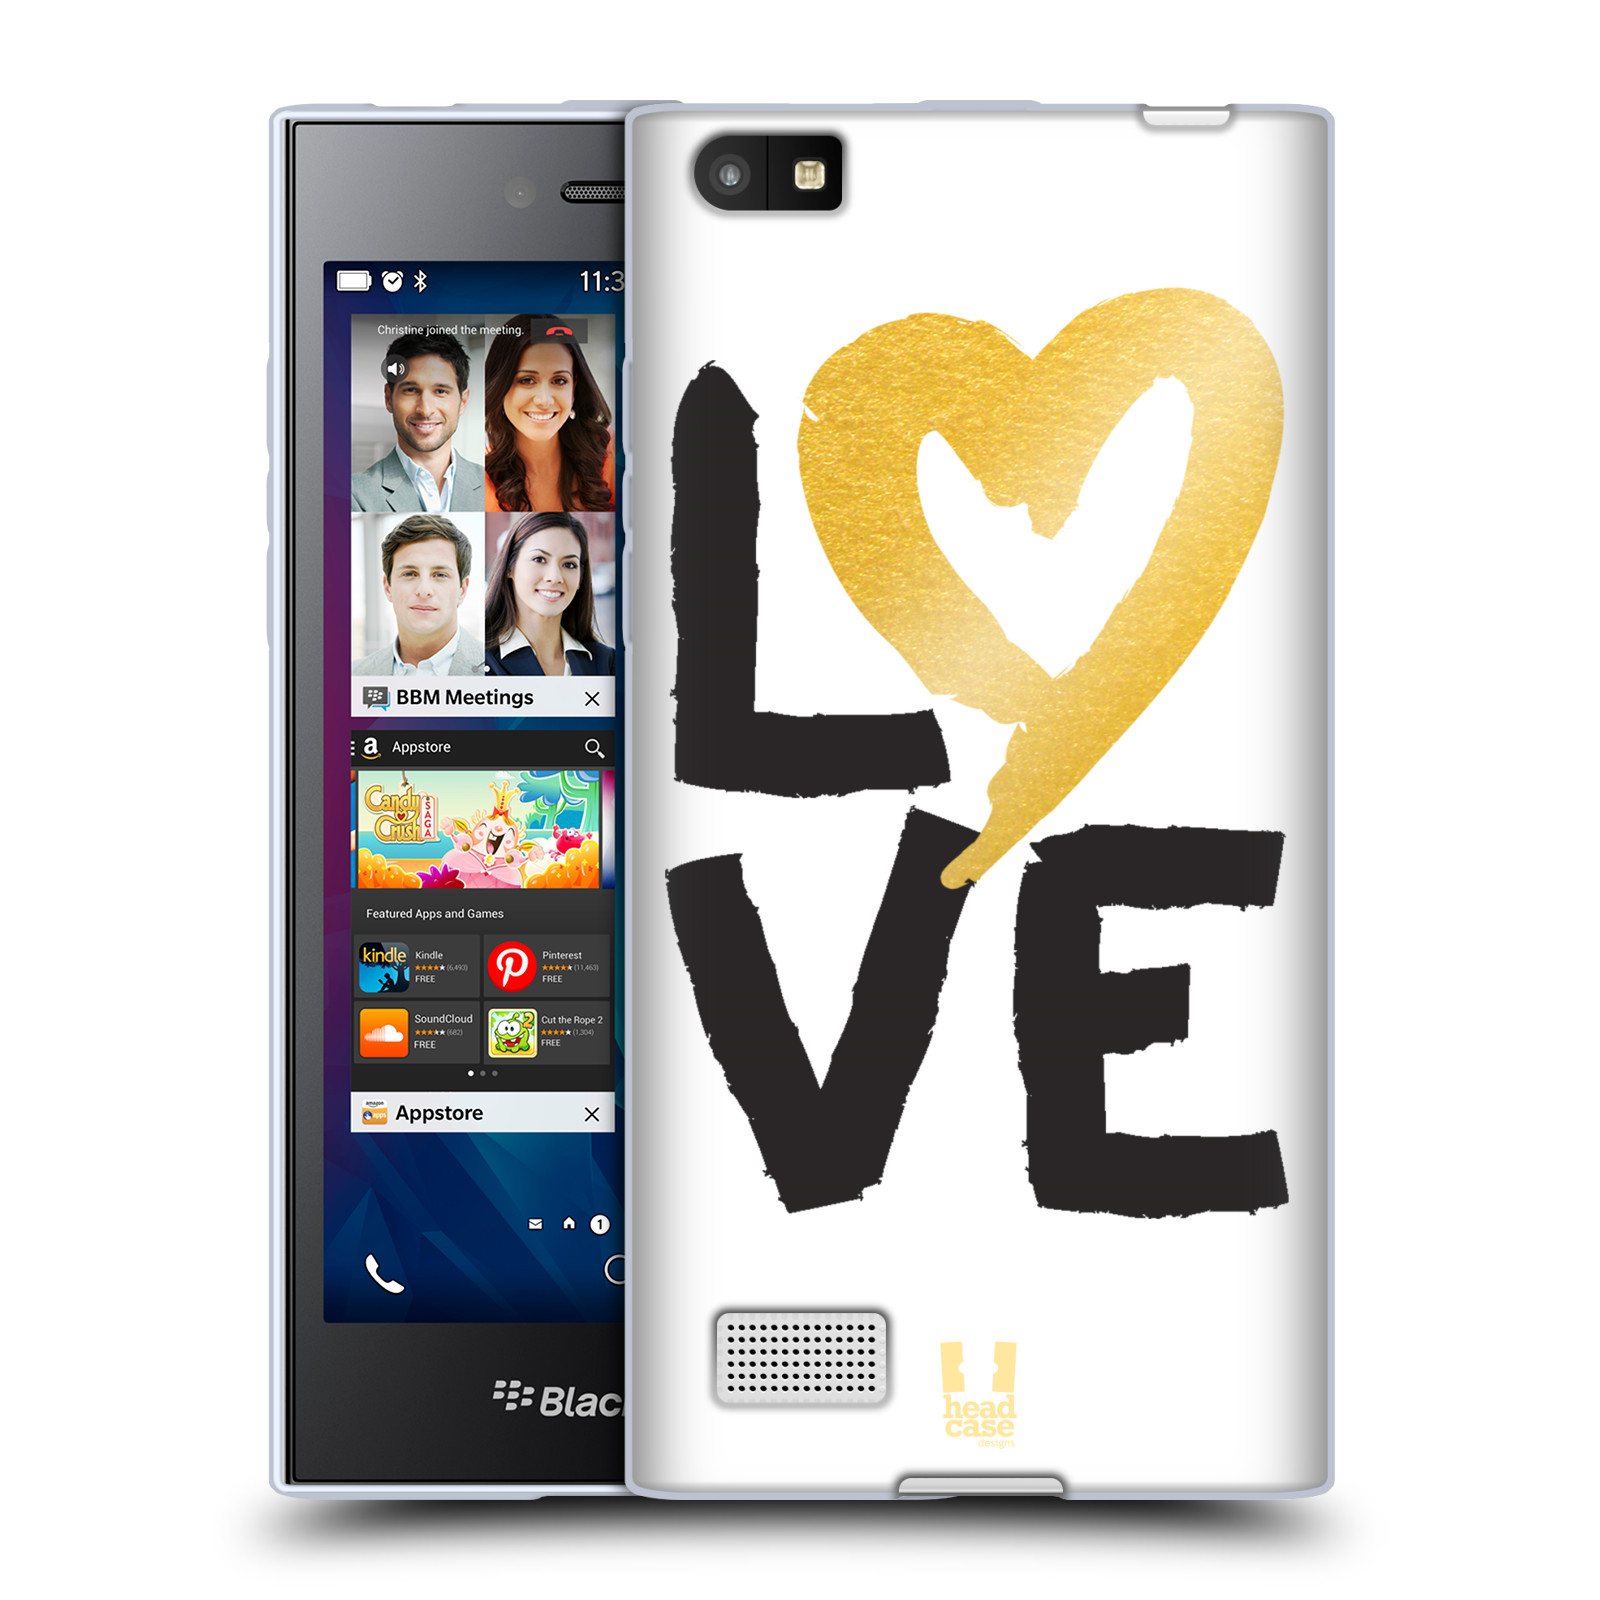 HEAD CASE DESIGNS GRAND AS GOLD SOFT GEL CASE FOR BLACKBERRY PHONES